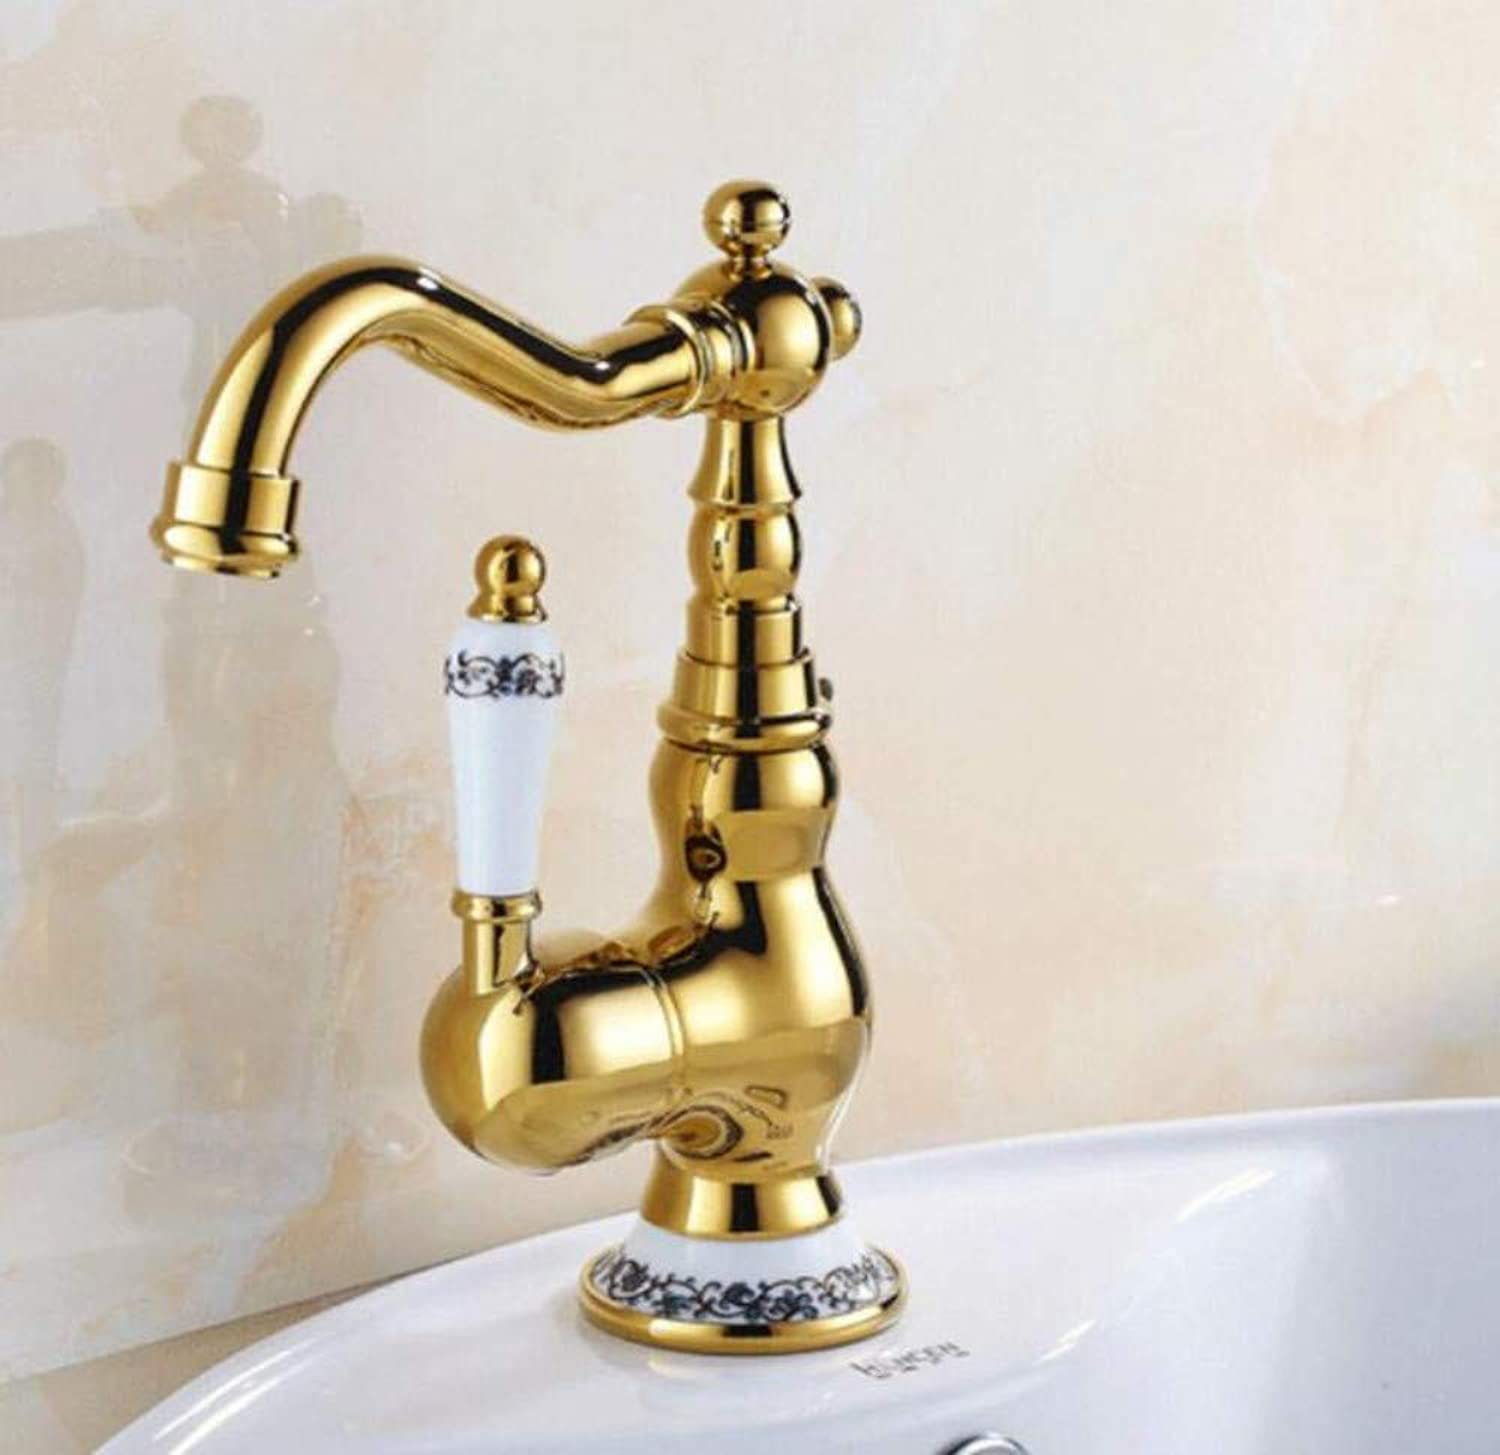 All Copper Faucet gold All-Copper Basin Faucet Can Be redated Antique gold-Plated Hot and Cold